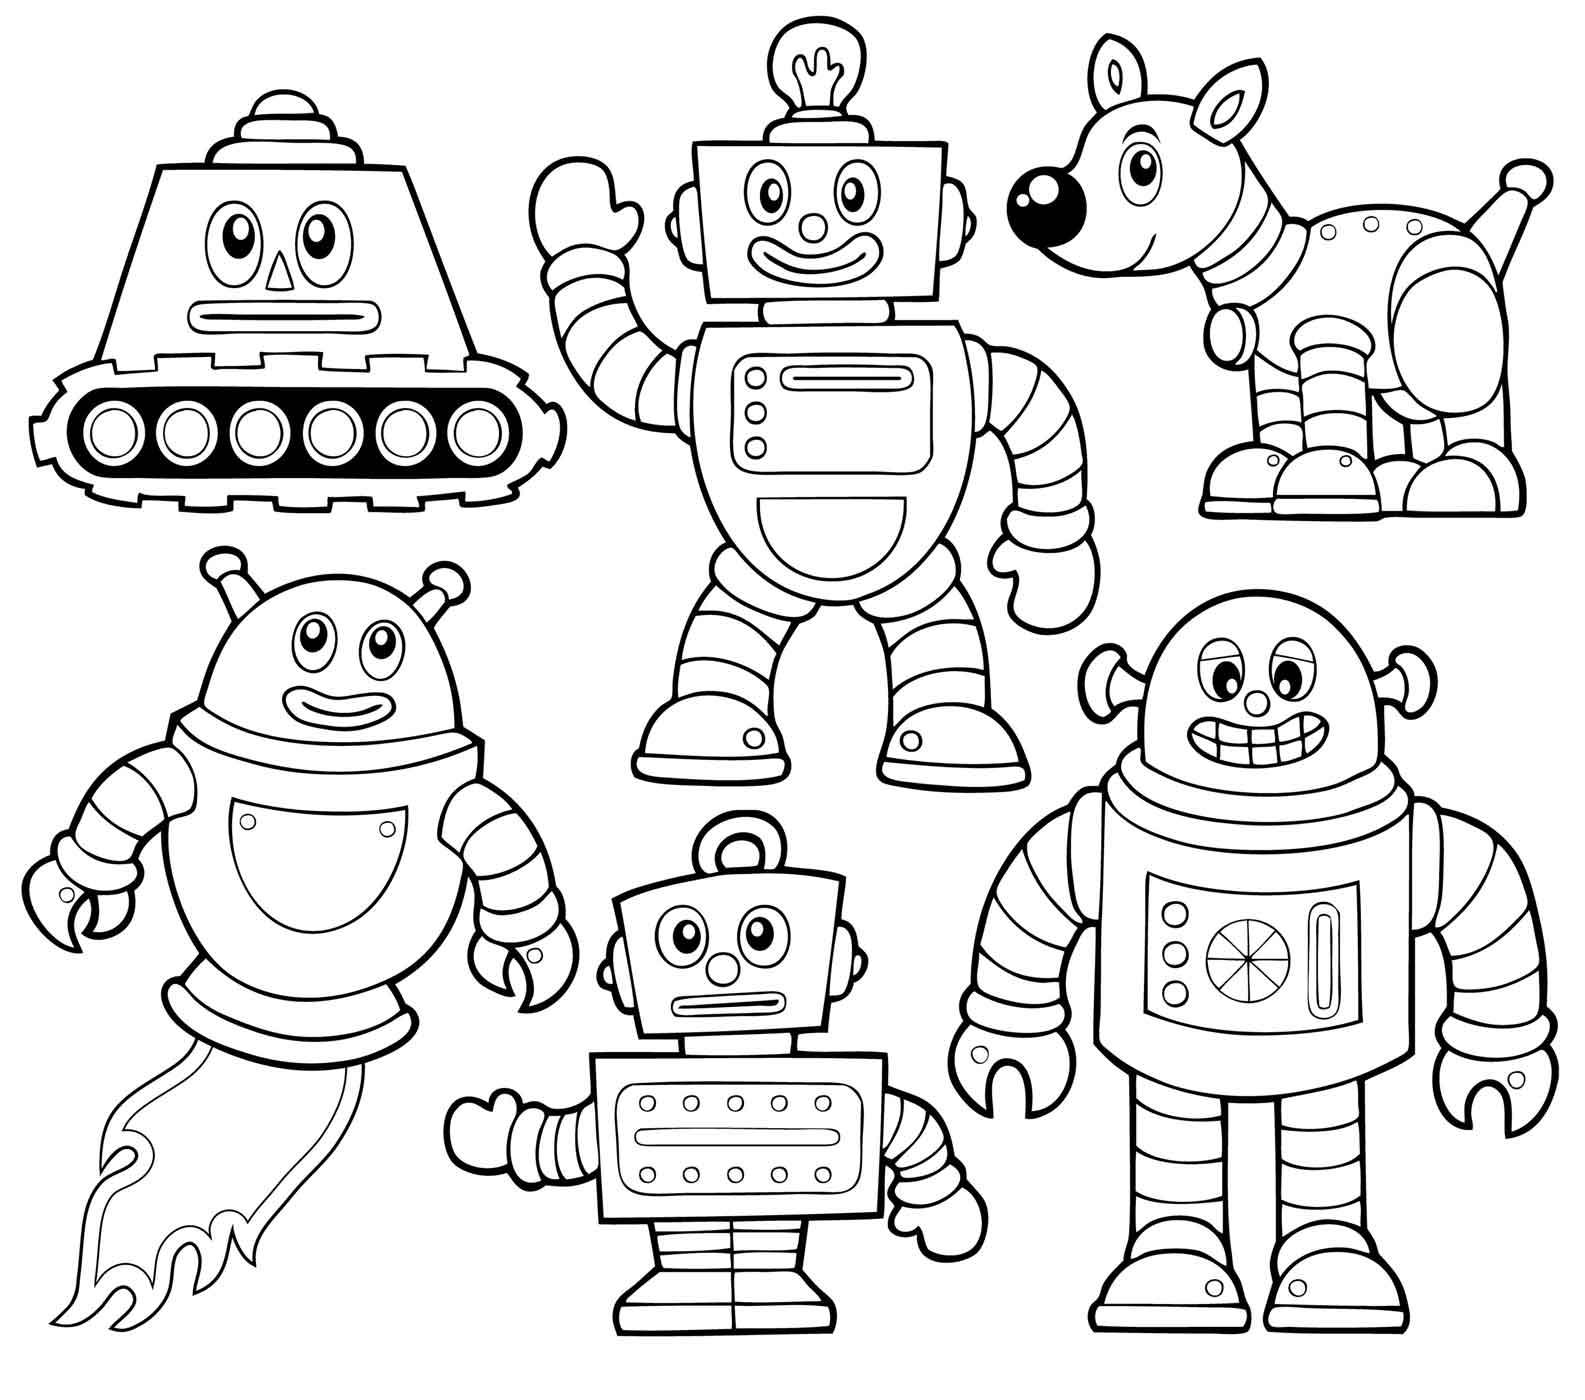 coloring robot pages free printable robots coloring pages for boys pages coloring robot